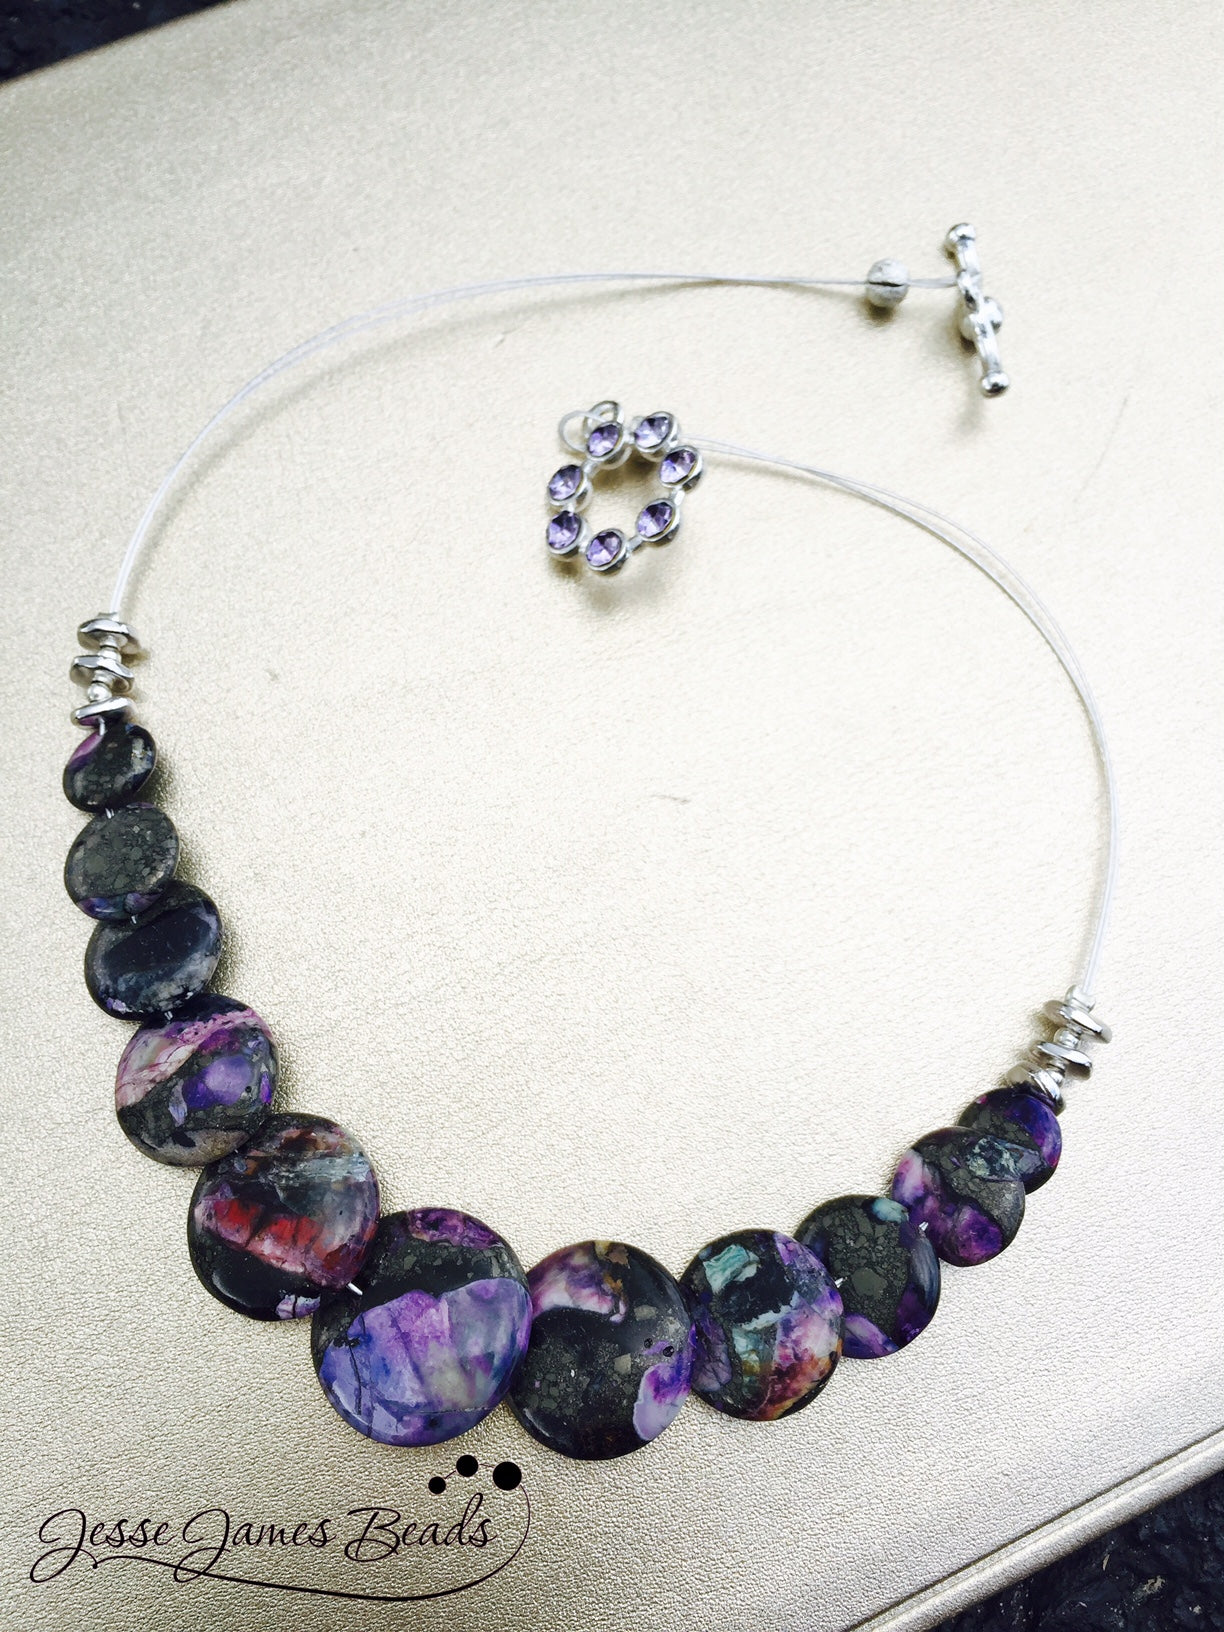 Guitar Wire Inspired Jewelry - Purple Rain Necklace Project from Jesse James Beads and Candie Cooper